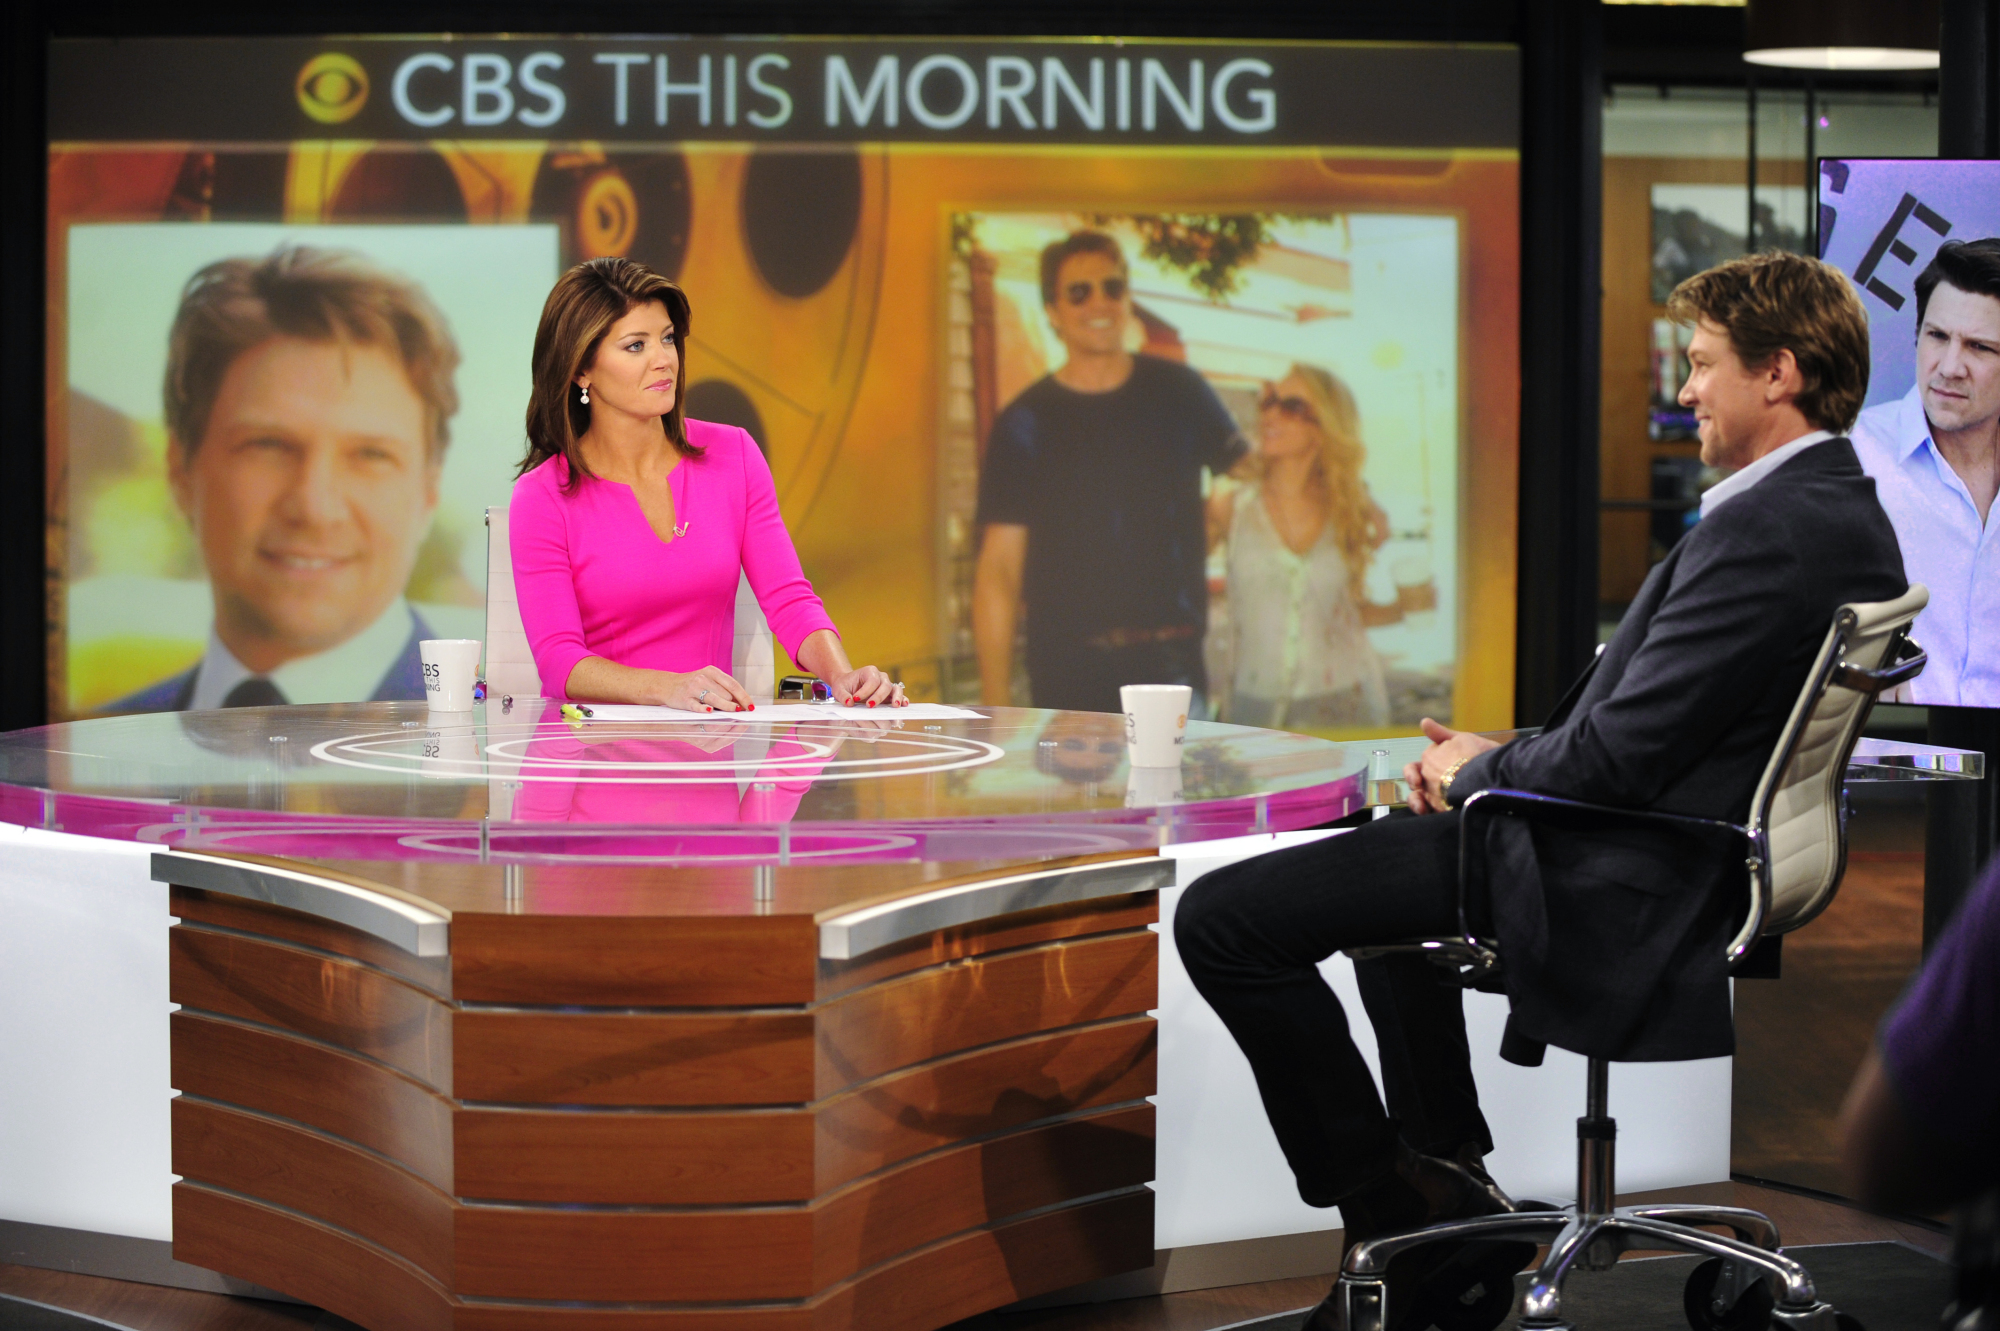 CBS This Morning Set